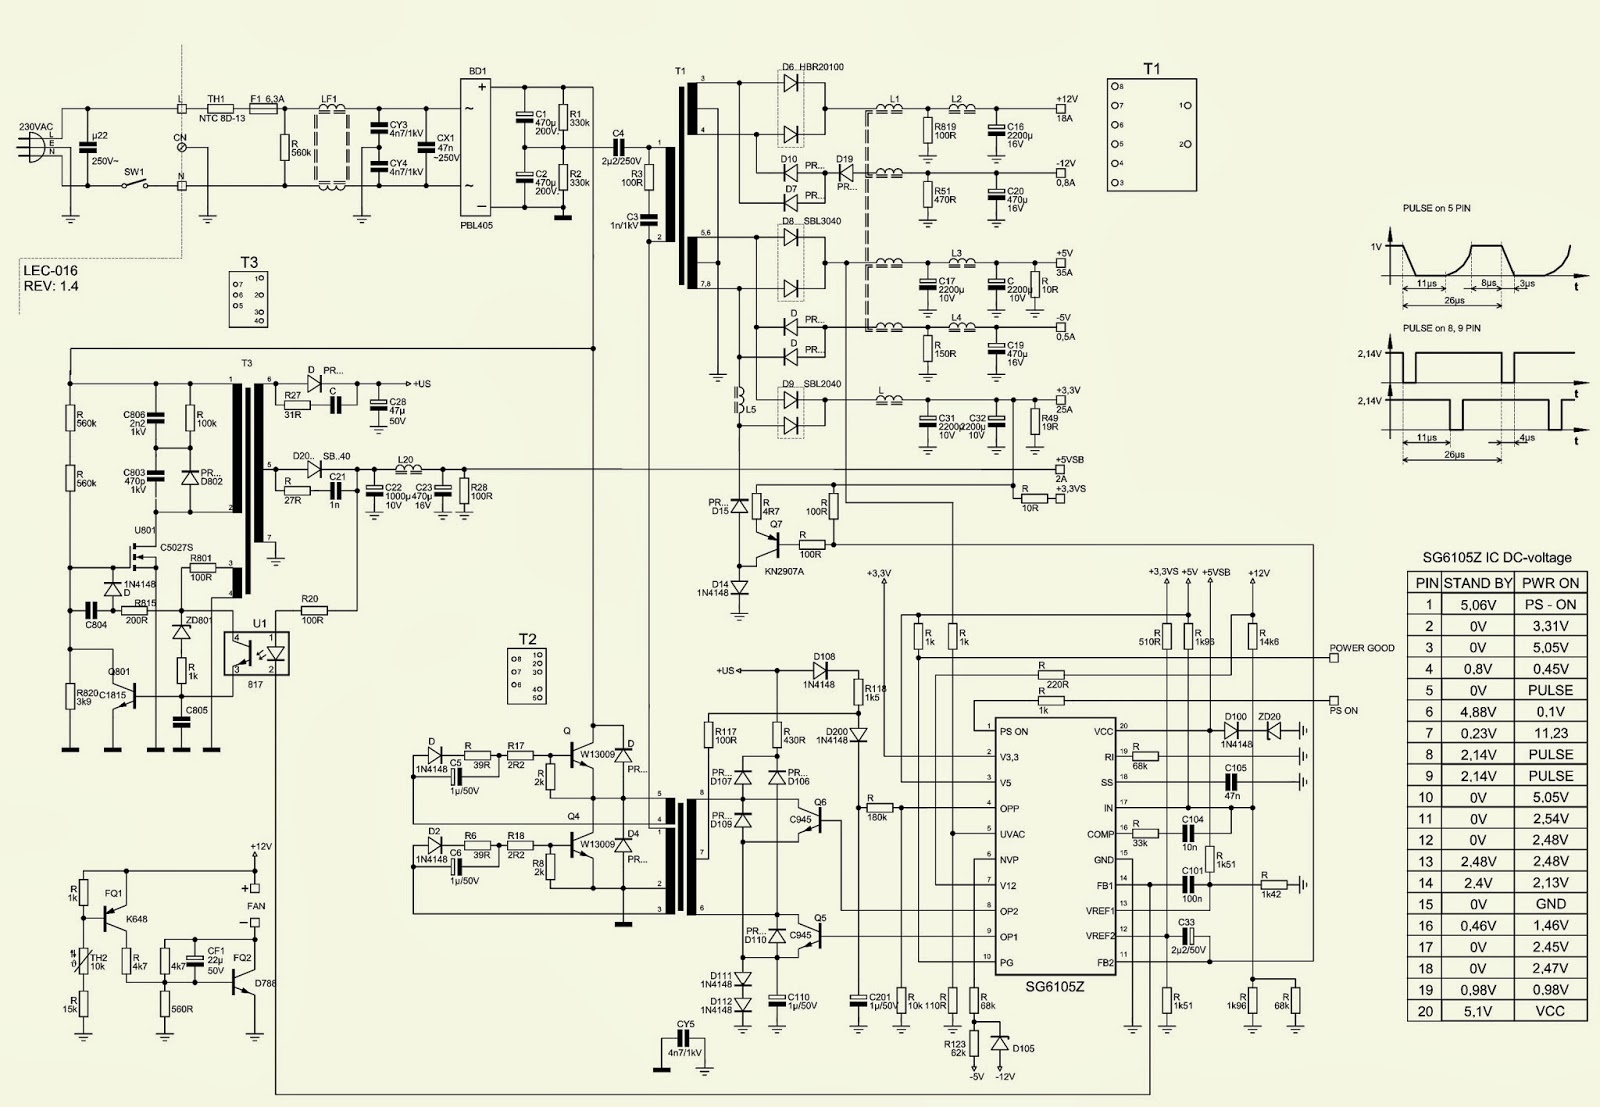 power supply schematic furthermore switching power supply schematicpower supply wiring diagrams wiring diagram power supply schematic furthermore switching power supply schematic